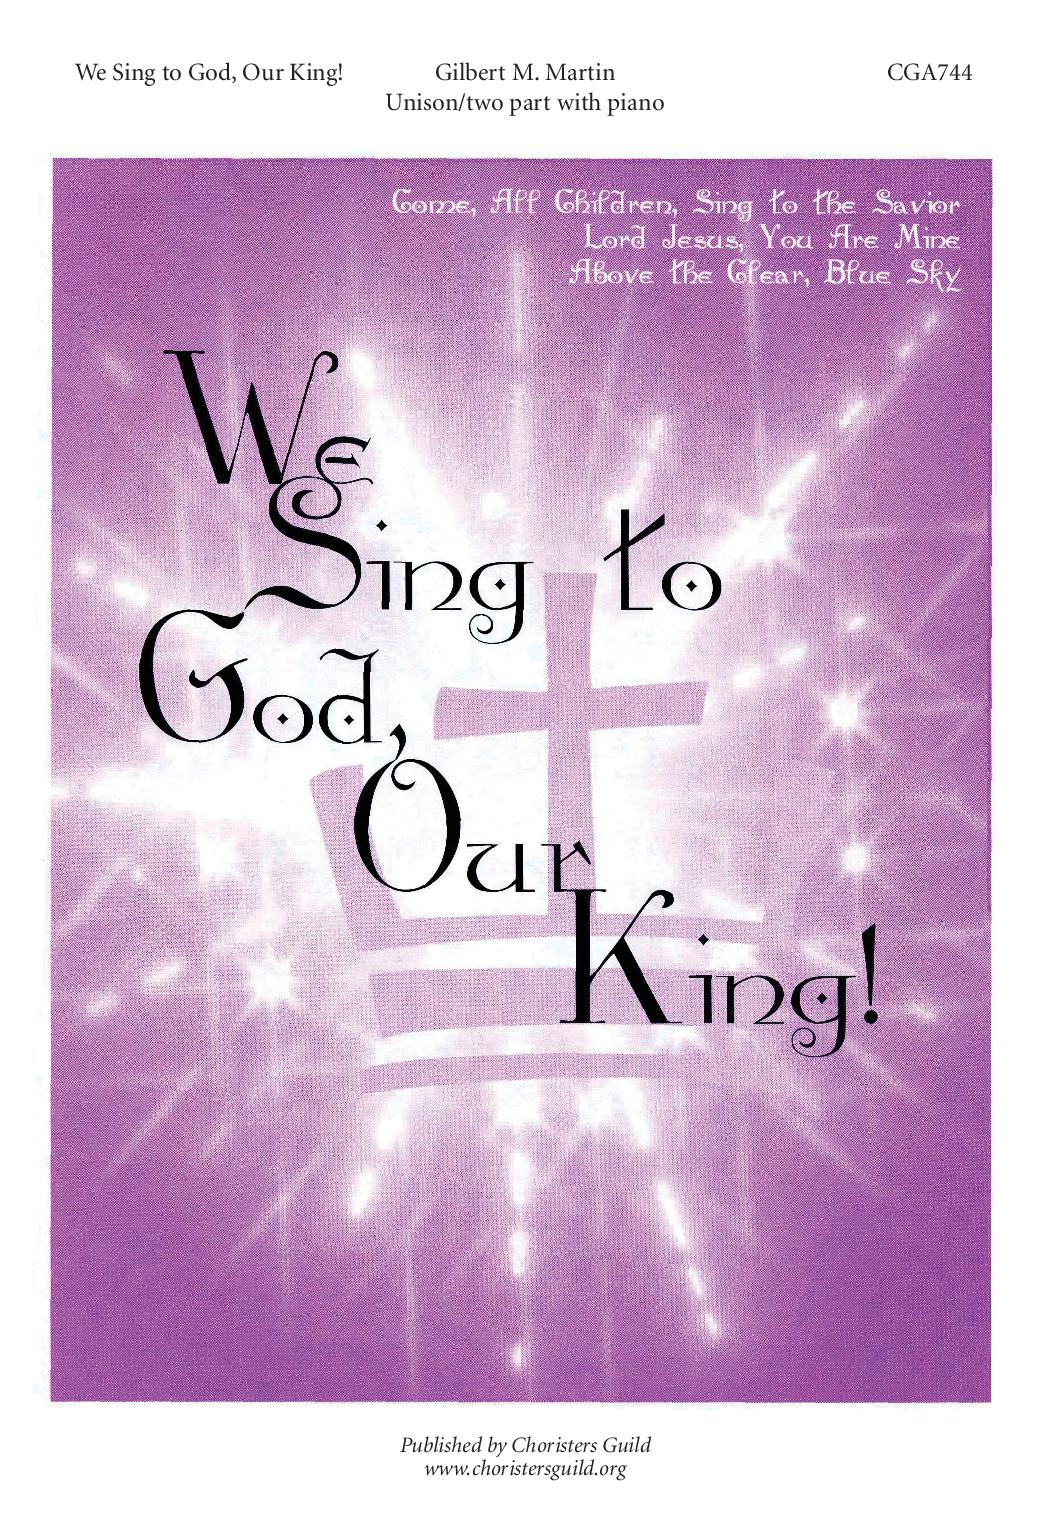 We Sing to God, Our King